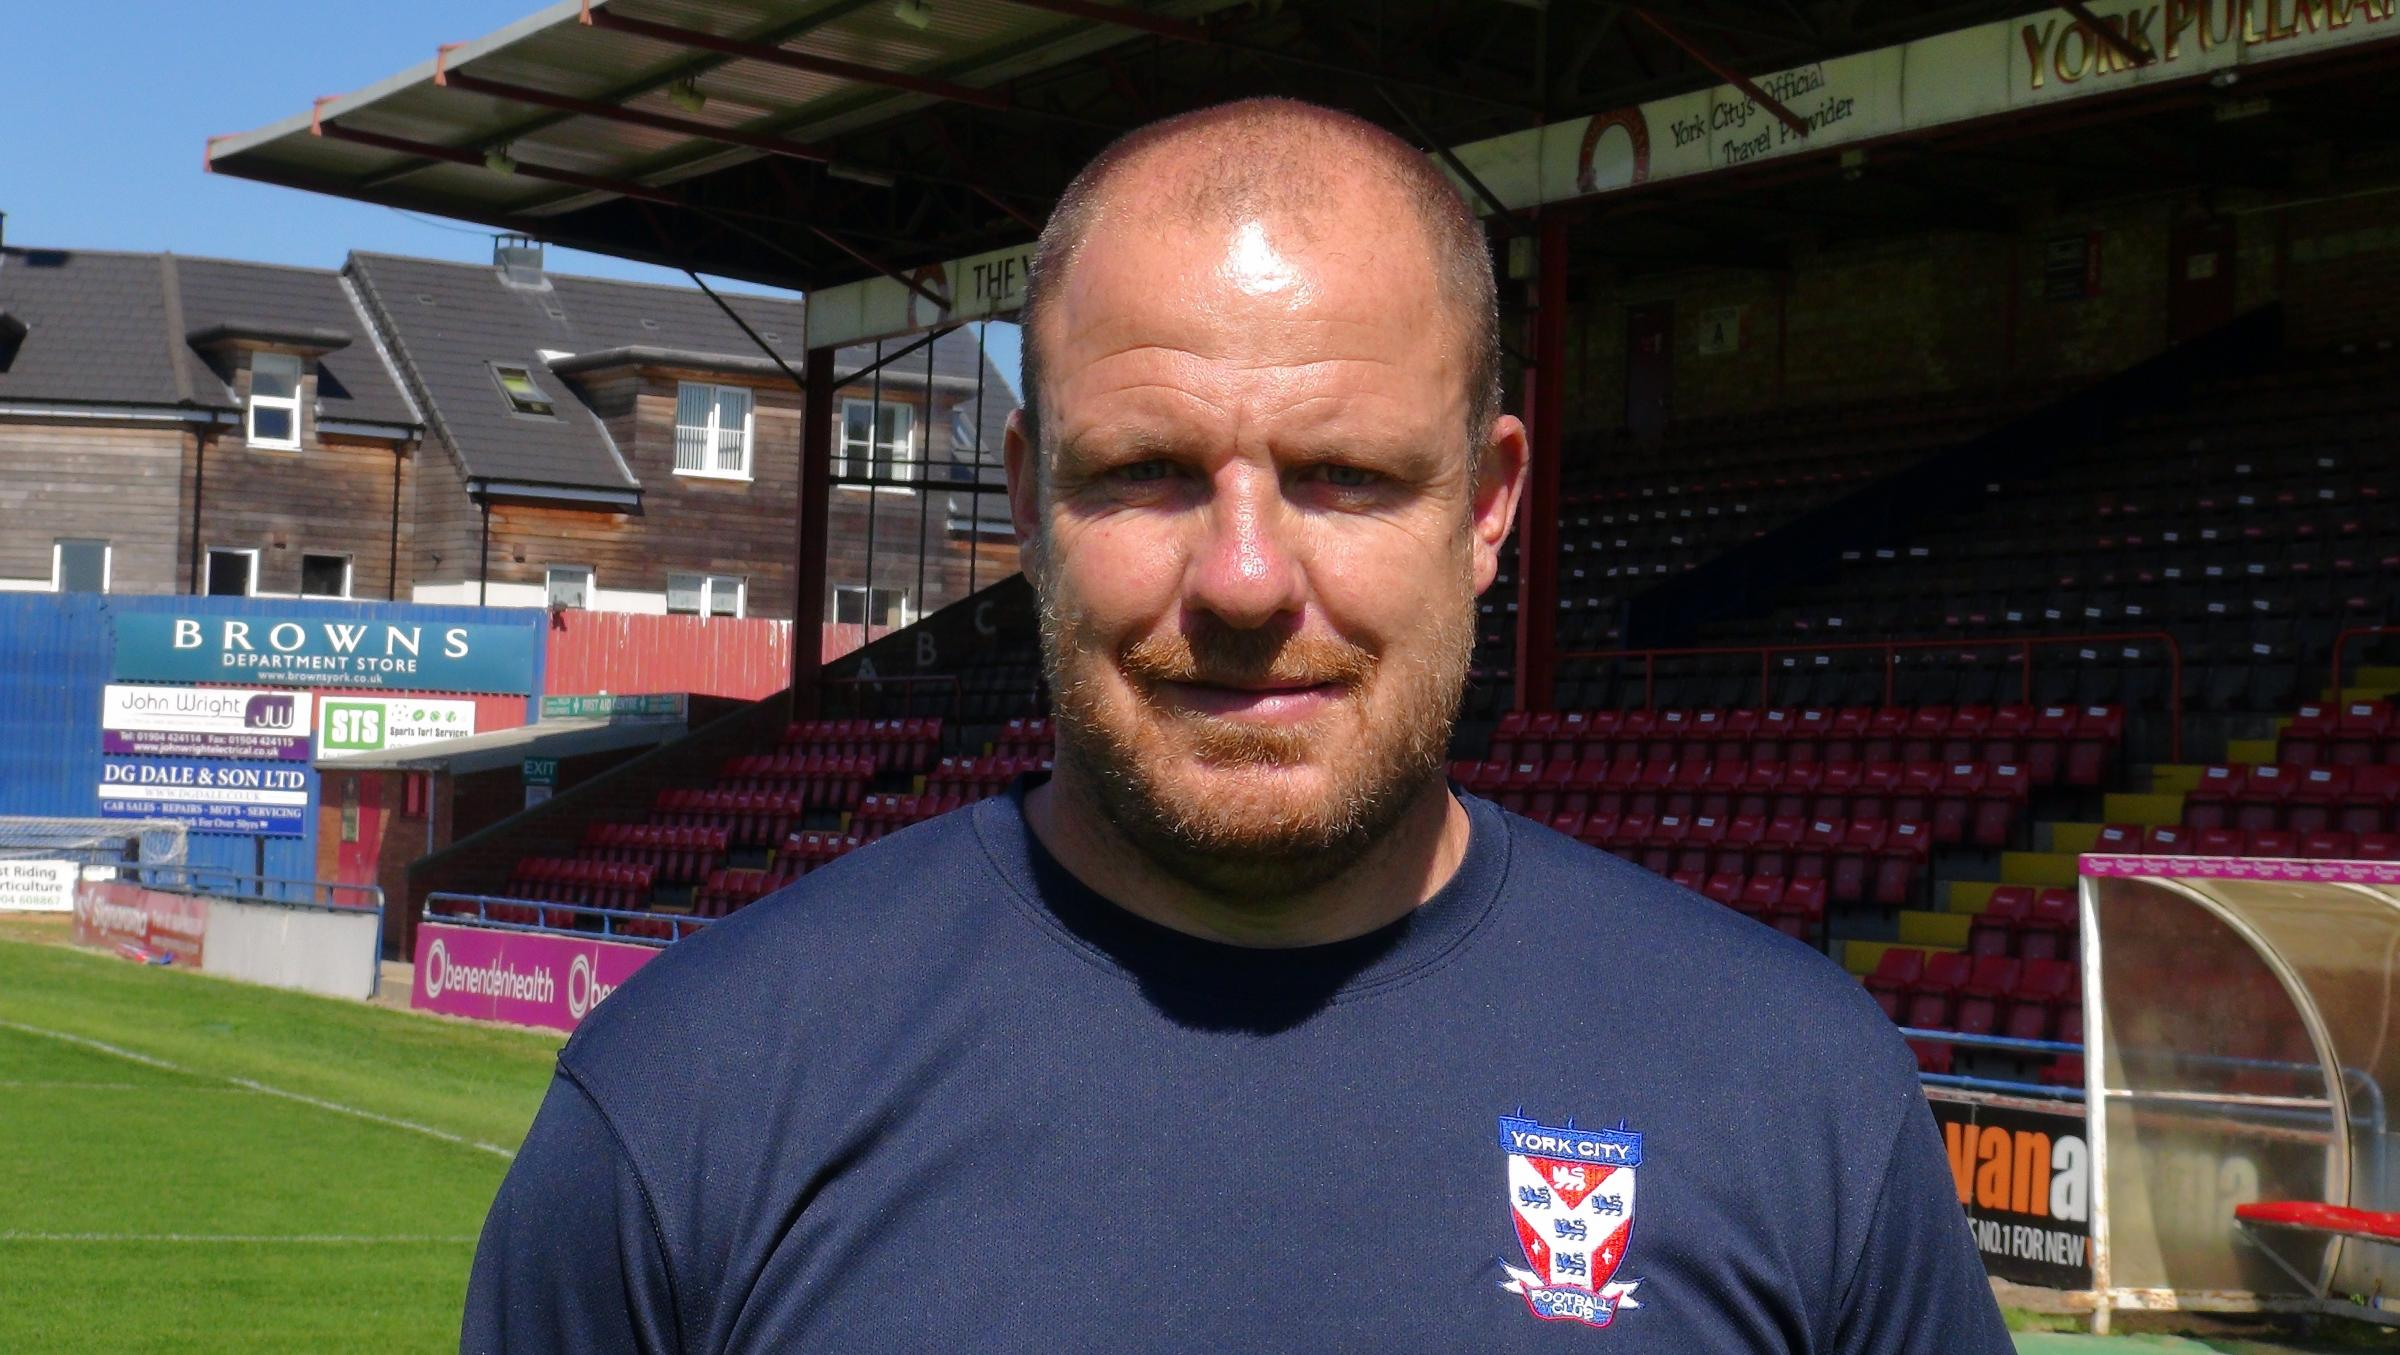 CONFIDENT: Caretaker manager Sam Collins believes his York City team are better than undefeated Kidderminster